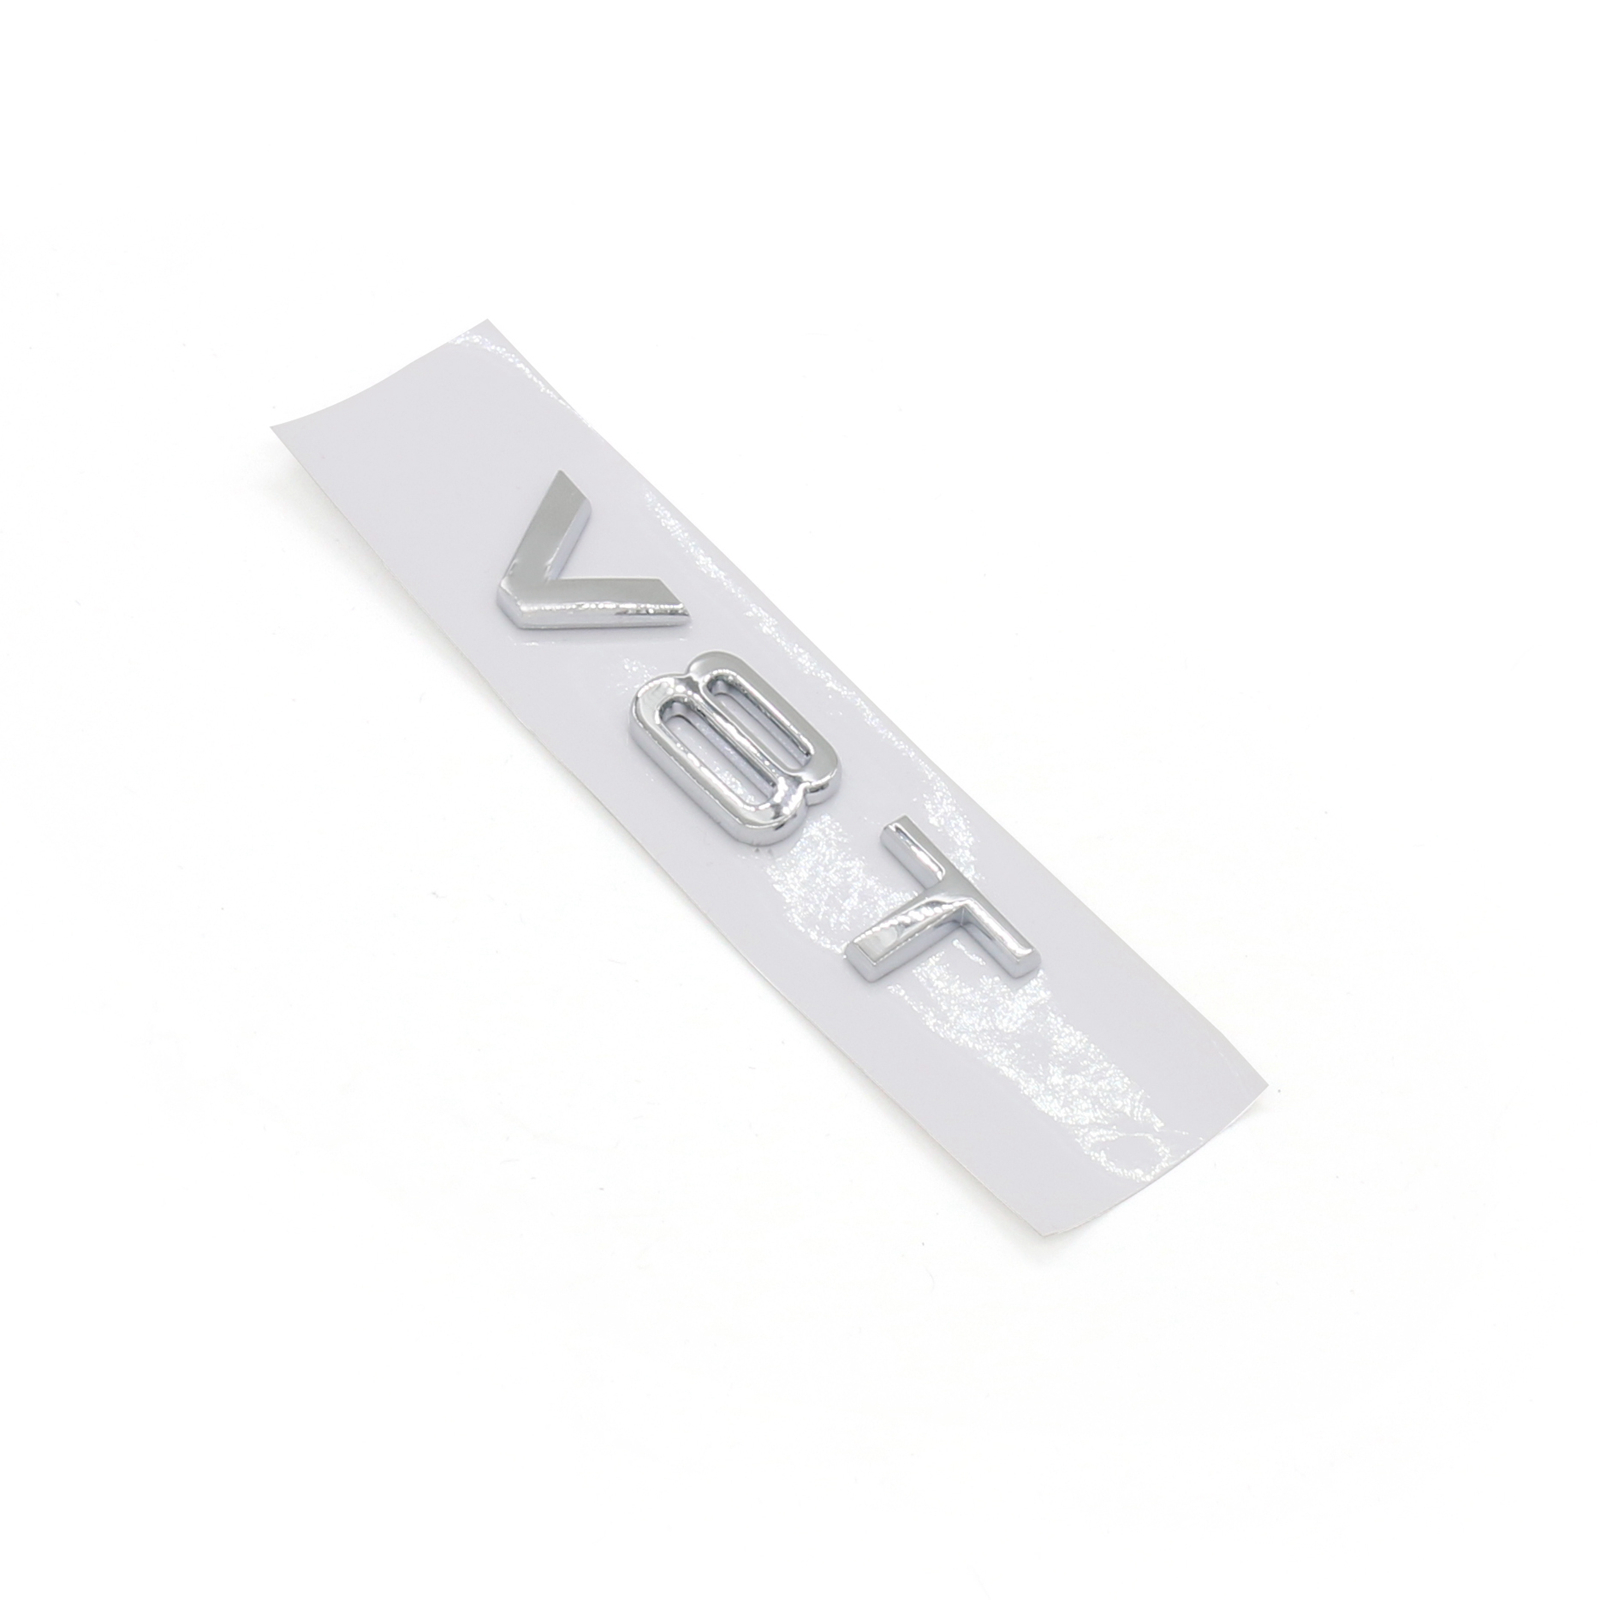 V8t Emblem Badge Fit For Audi A1 A3 A4 A5 A6 A7 Q3 Q5 Q7